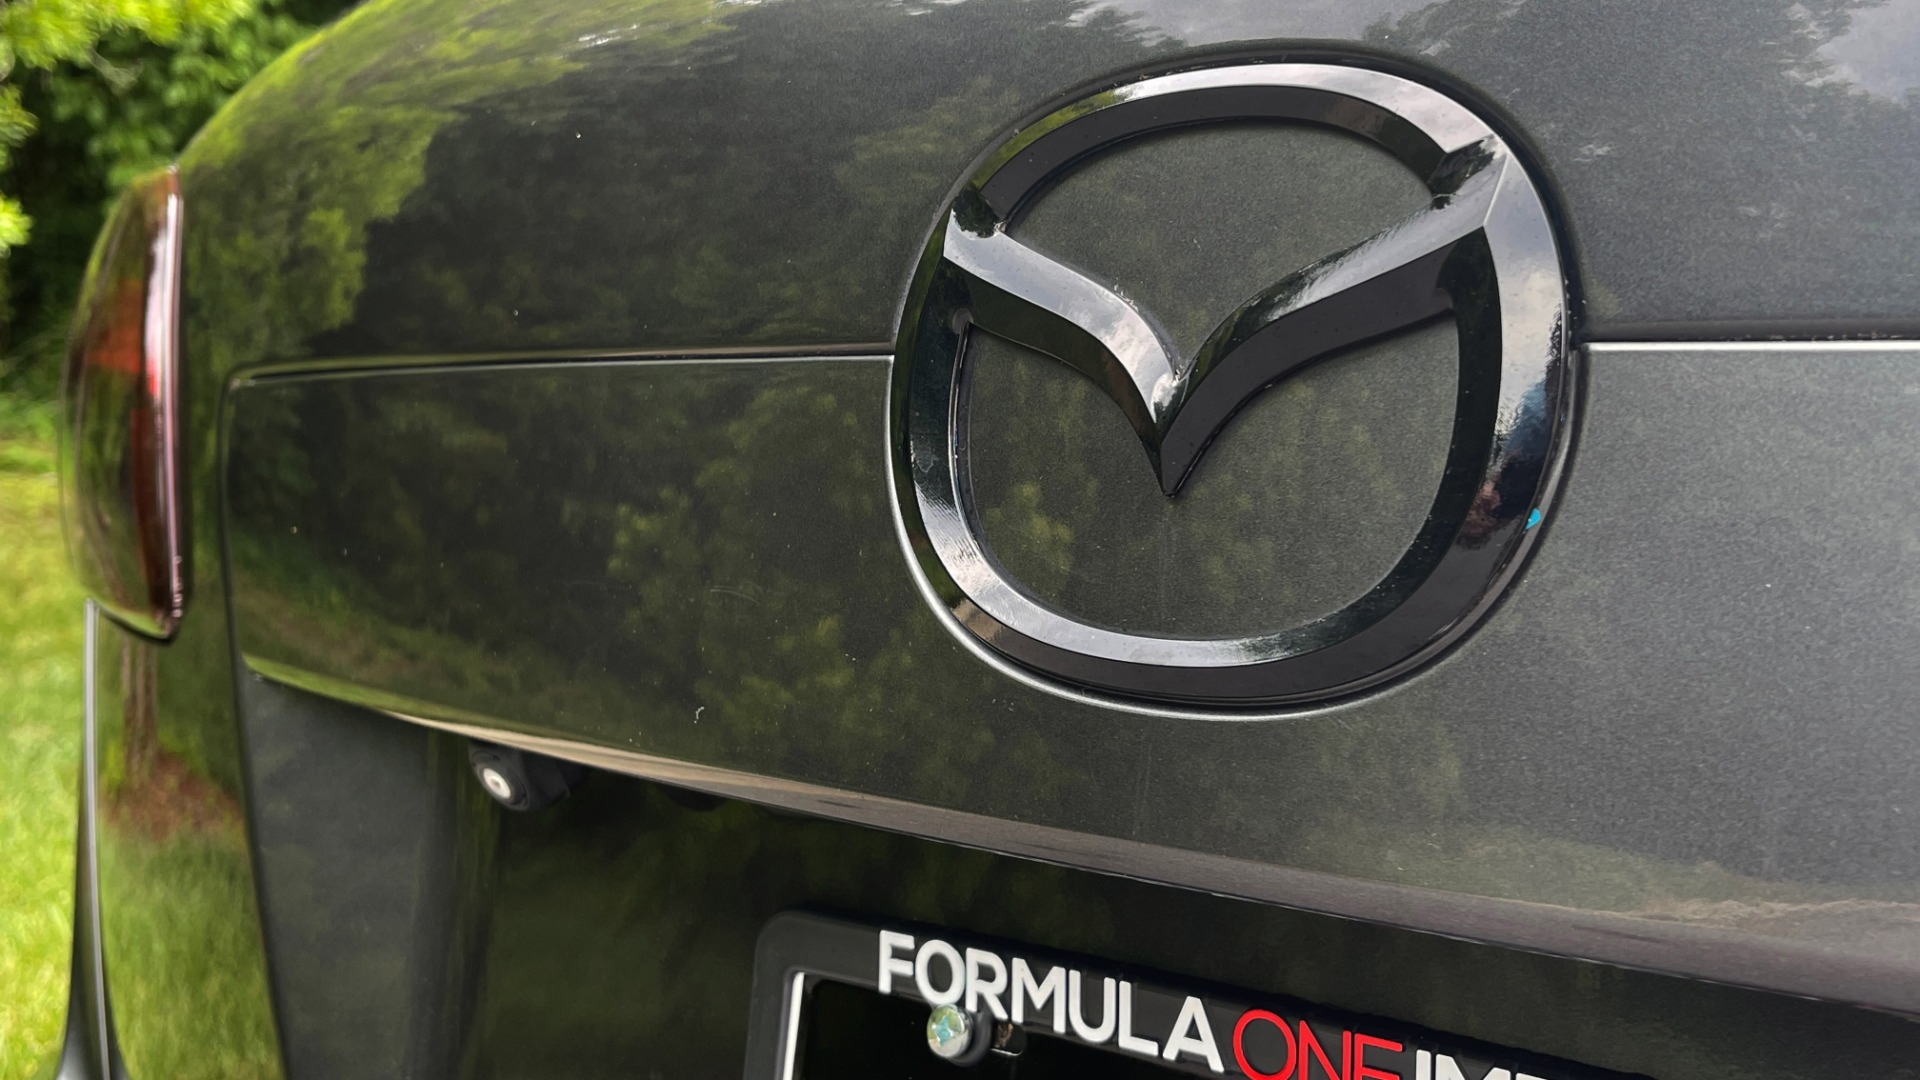 Used 2014 Mazda CX-9 TOURUNG / FWD / 3.7L V6 / 6-SPD AUTO / HTD STS / 3-ROW / REARVIEW for sale $14,995 at Formula Imports in Charlotte NC 28227 20